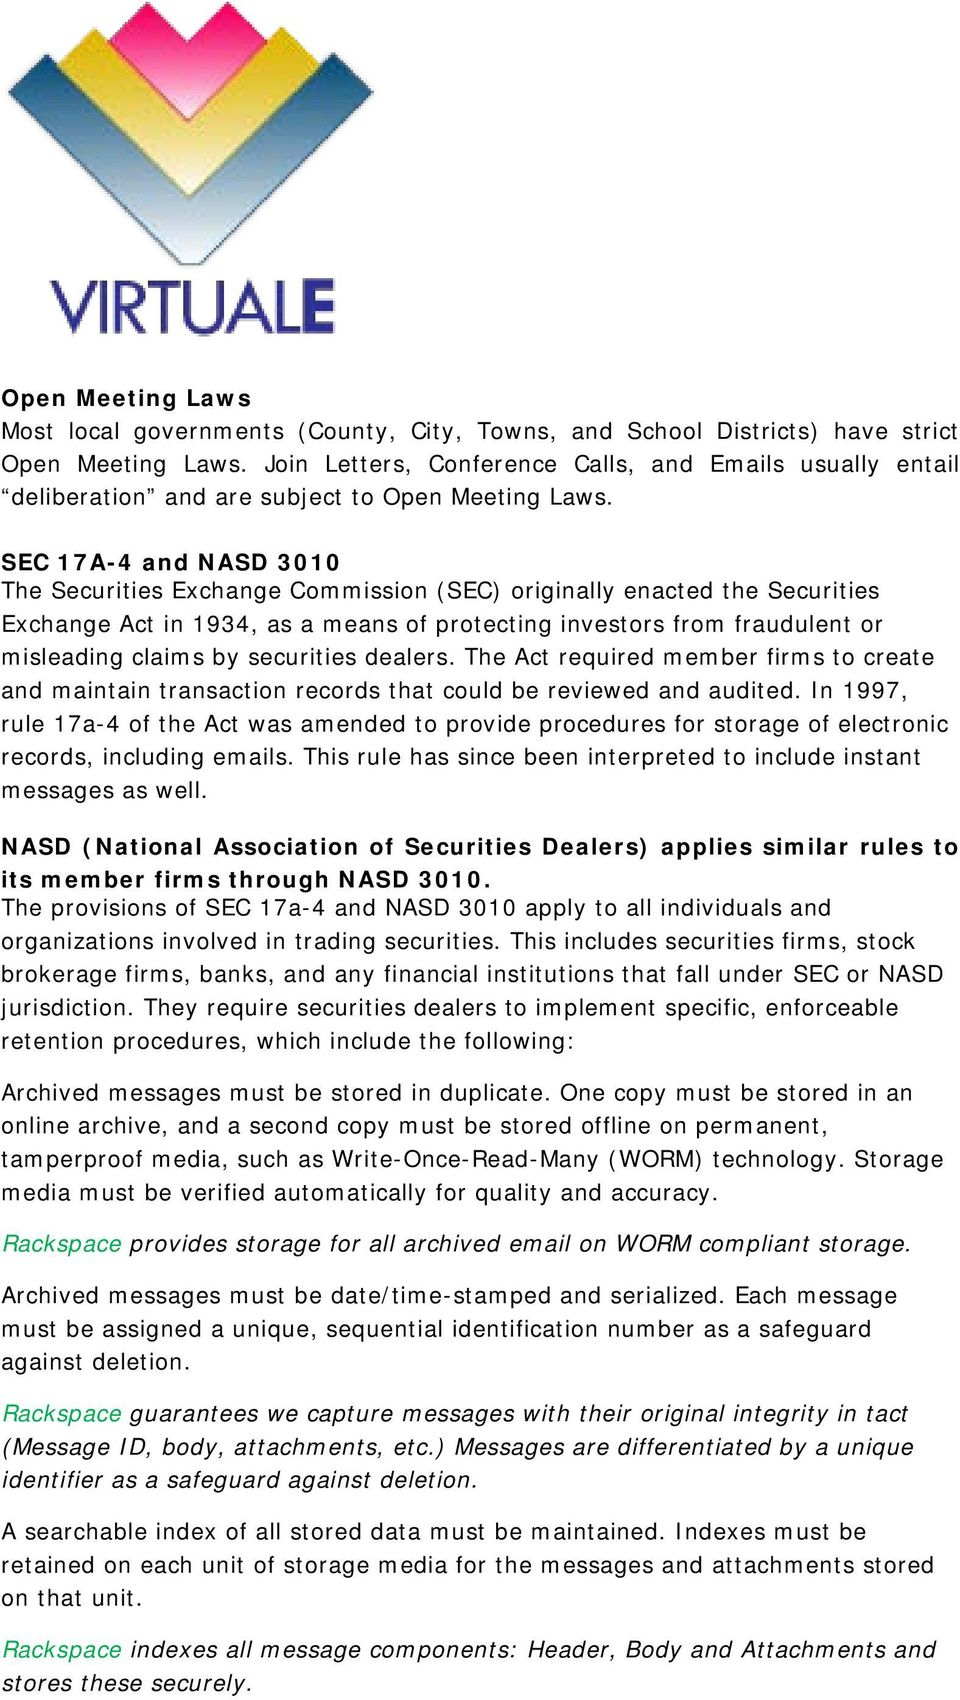 SEC 17A-4 and NASD 3010 The Securities Exchange Commission (SEC) originally enacted the Securities Exchange Act in 1934, as a means of protecting investors from fraudulent or misleading claims by